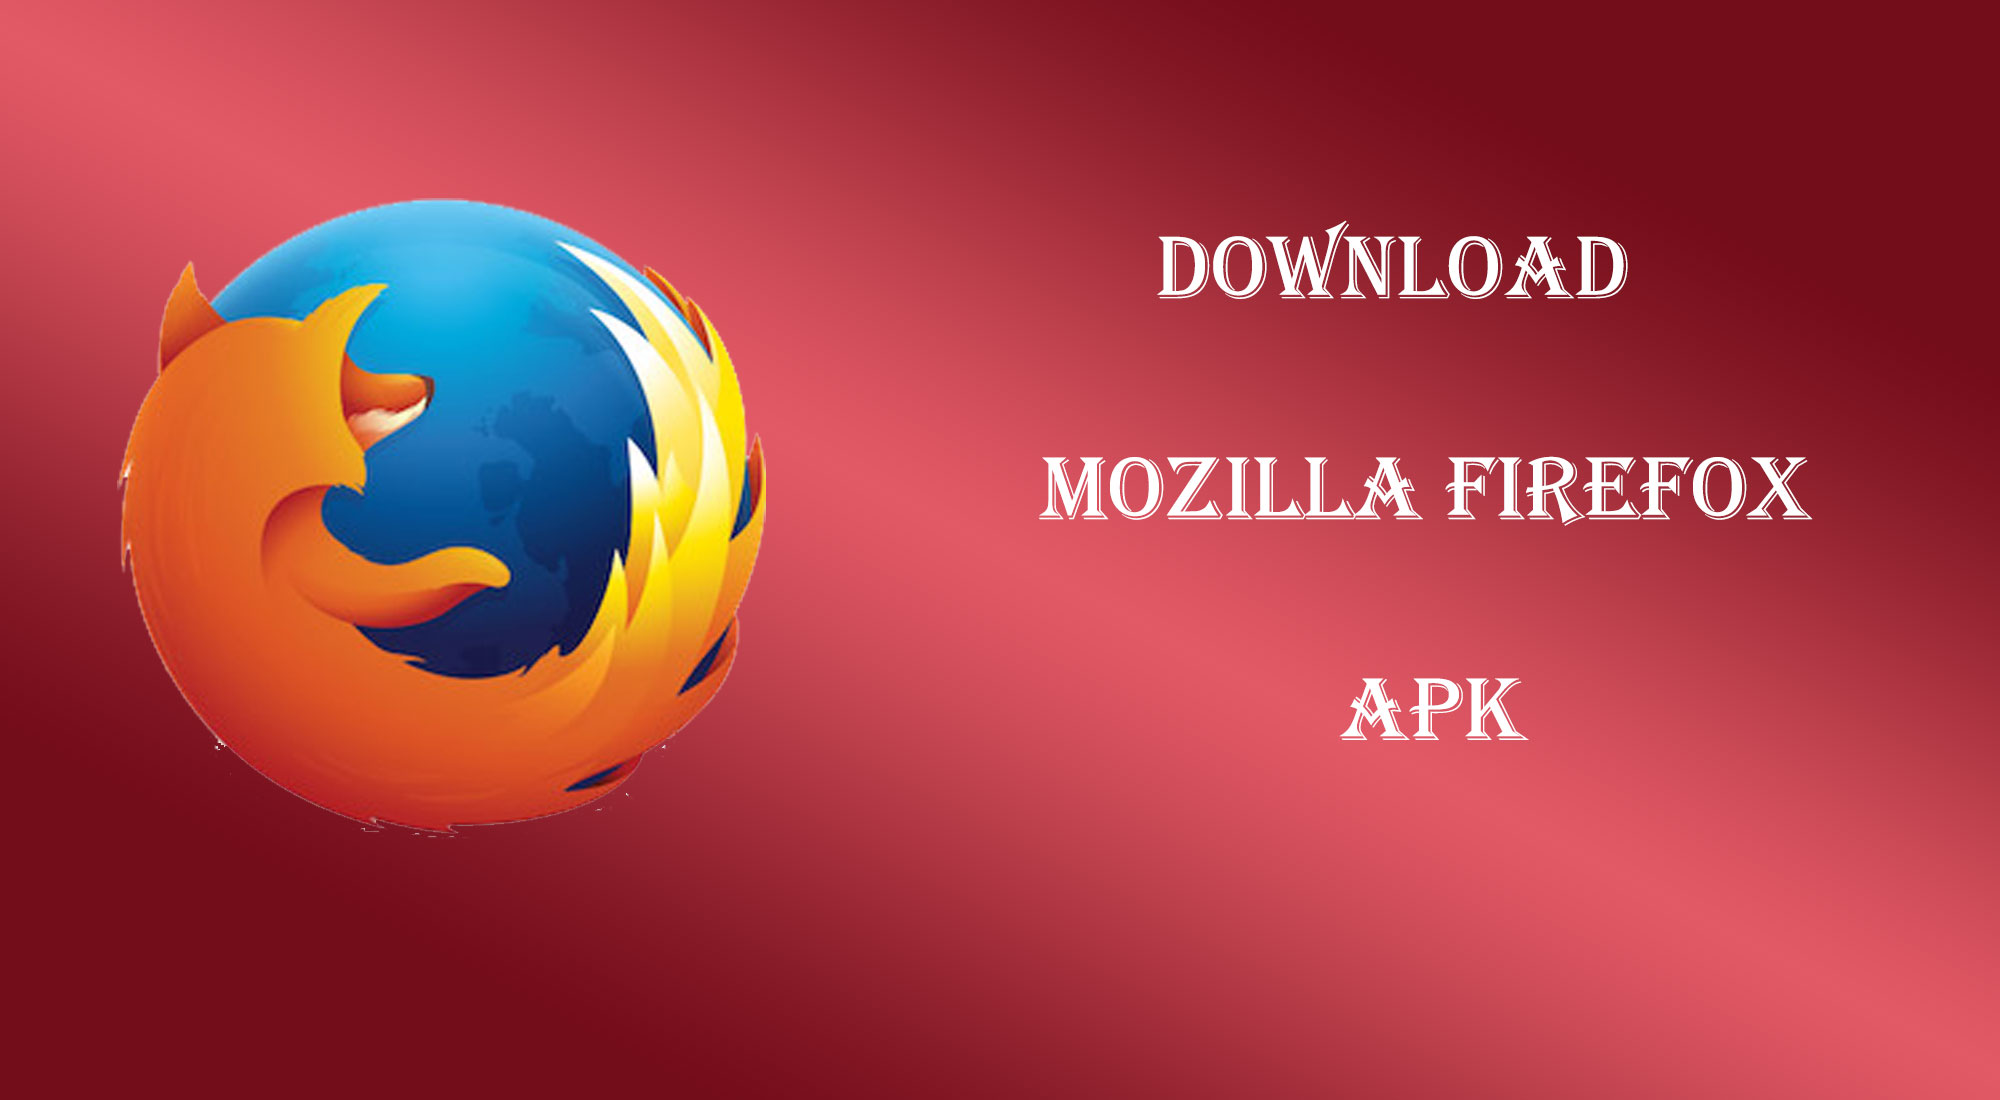 Download Mozilla Firefox 62.0 APK for Android